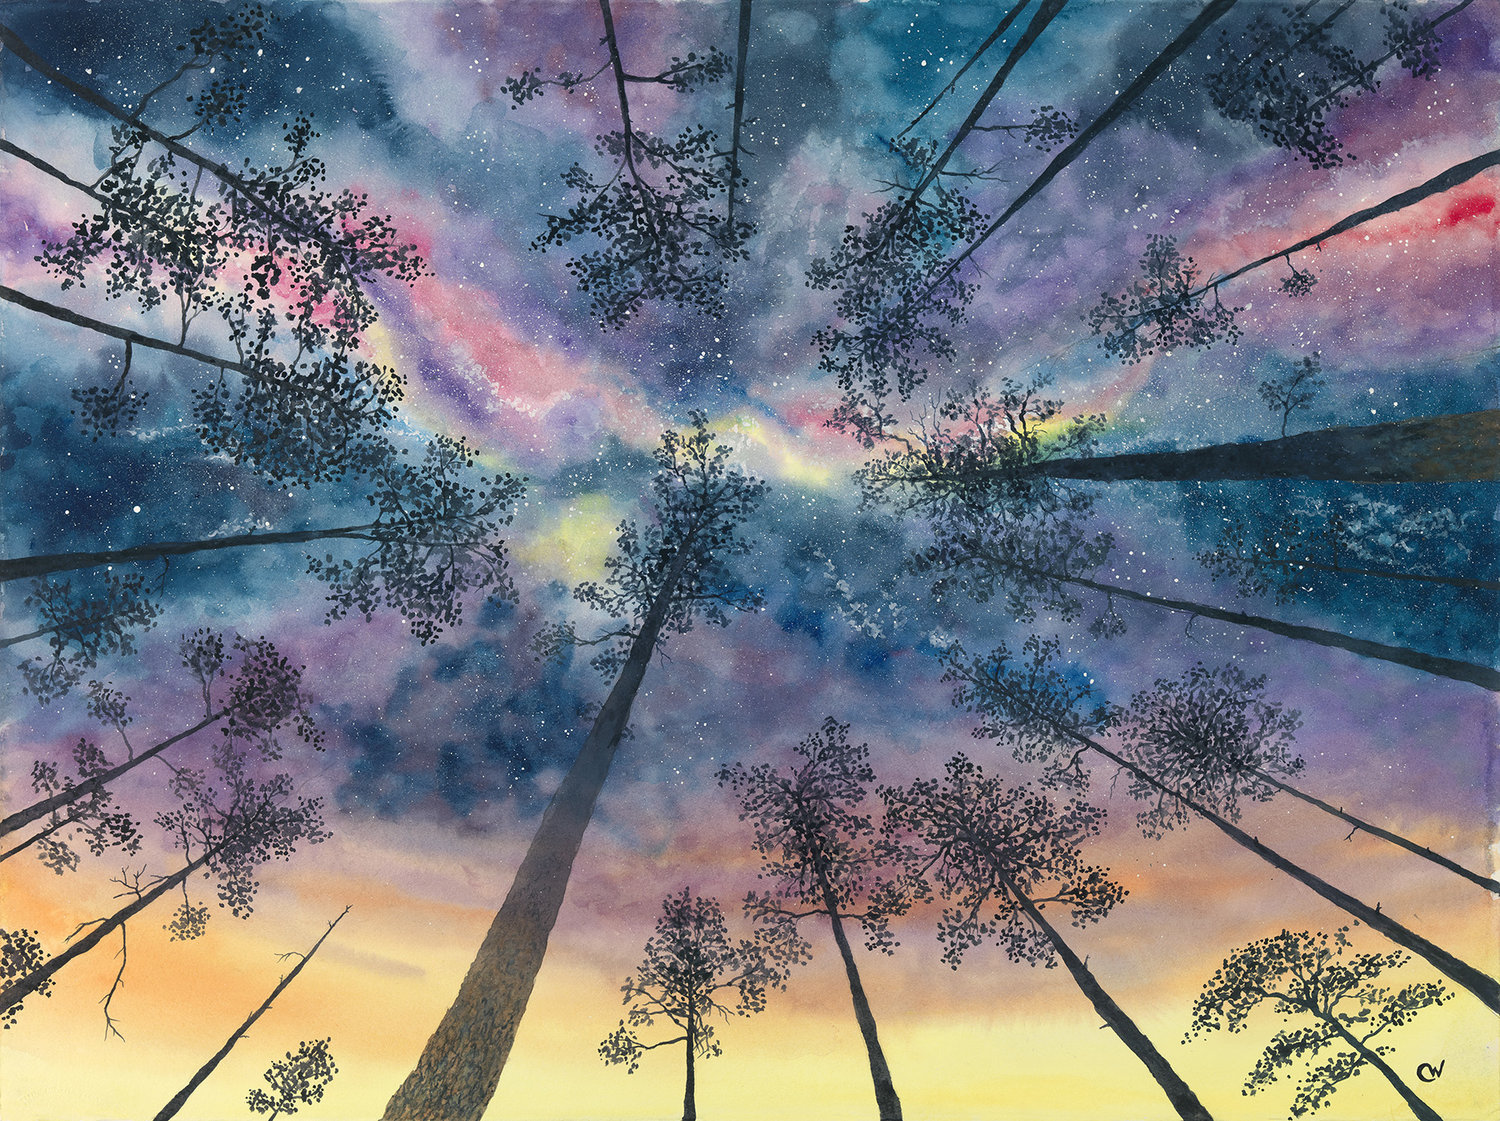 Night Sky in the Pines